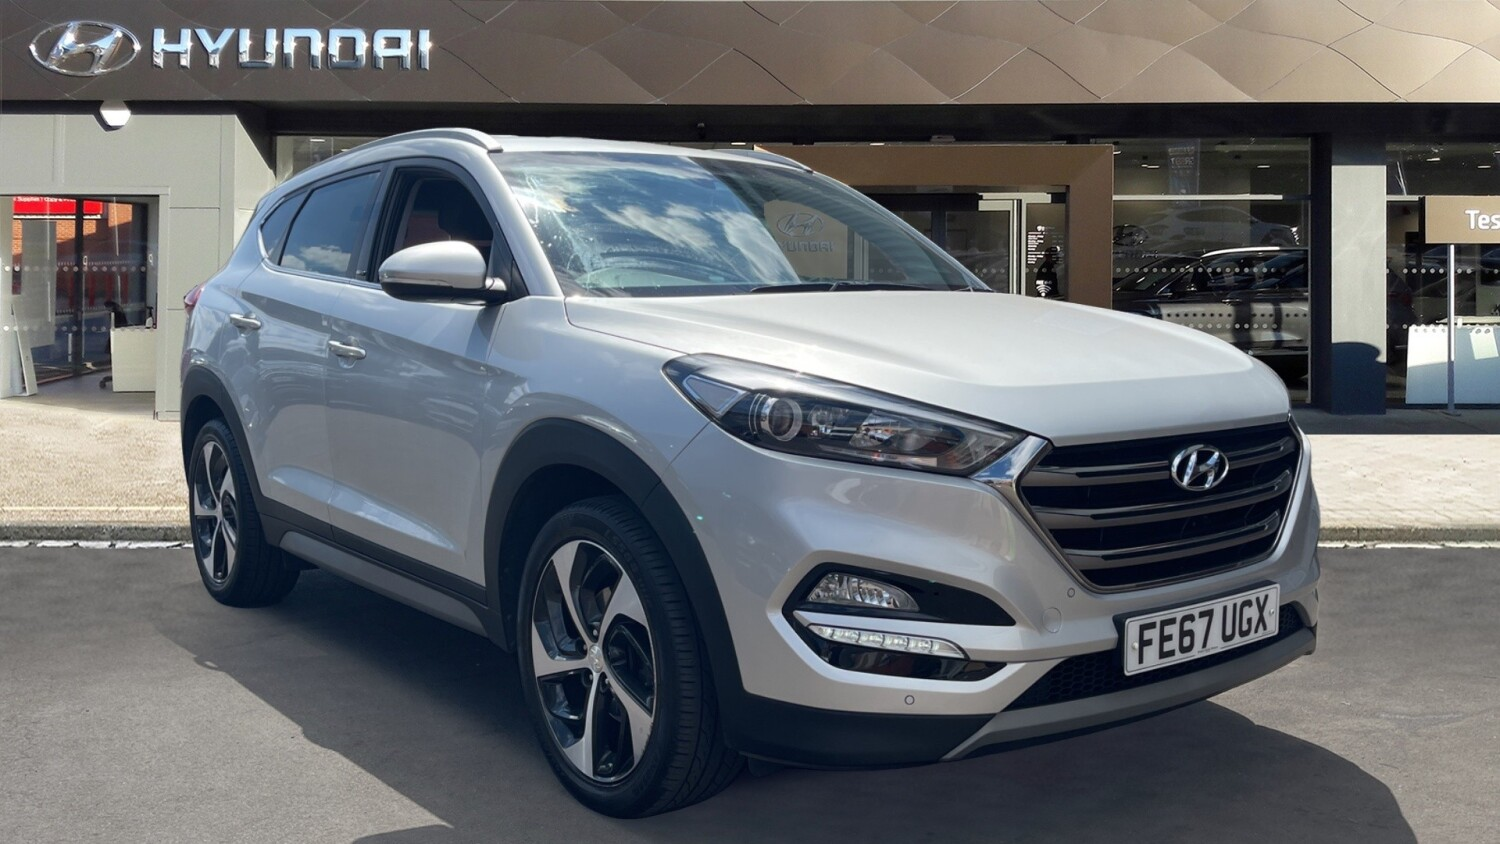 used hyundai tucson 1 7 crdi blue drive sport edition 5dr 2wd diesel estate for sale in scotland. Black Bedroom Furniture Sets. Home Design Ideas